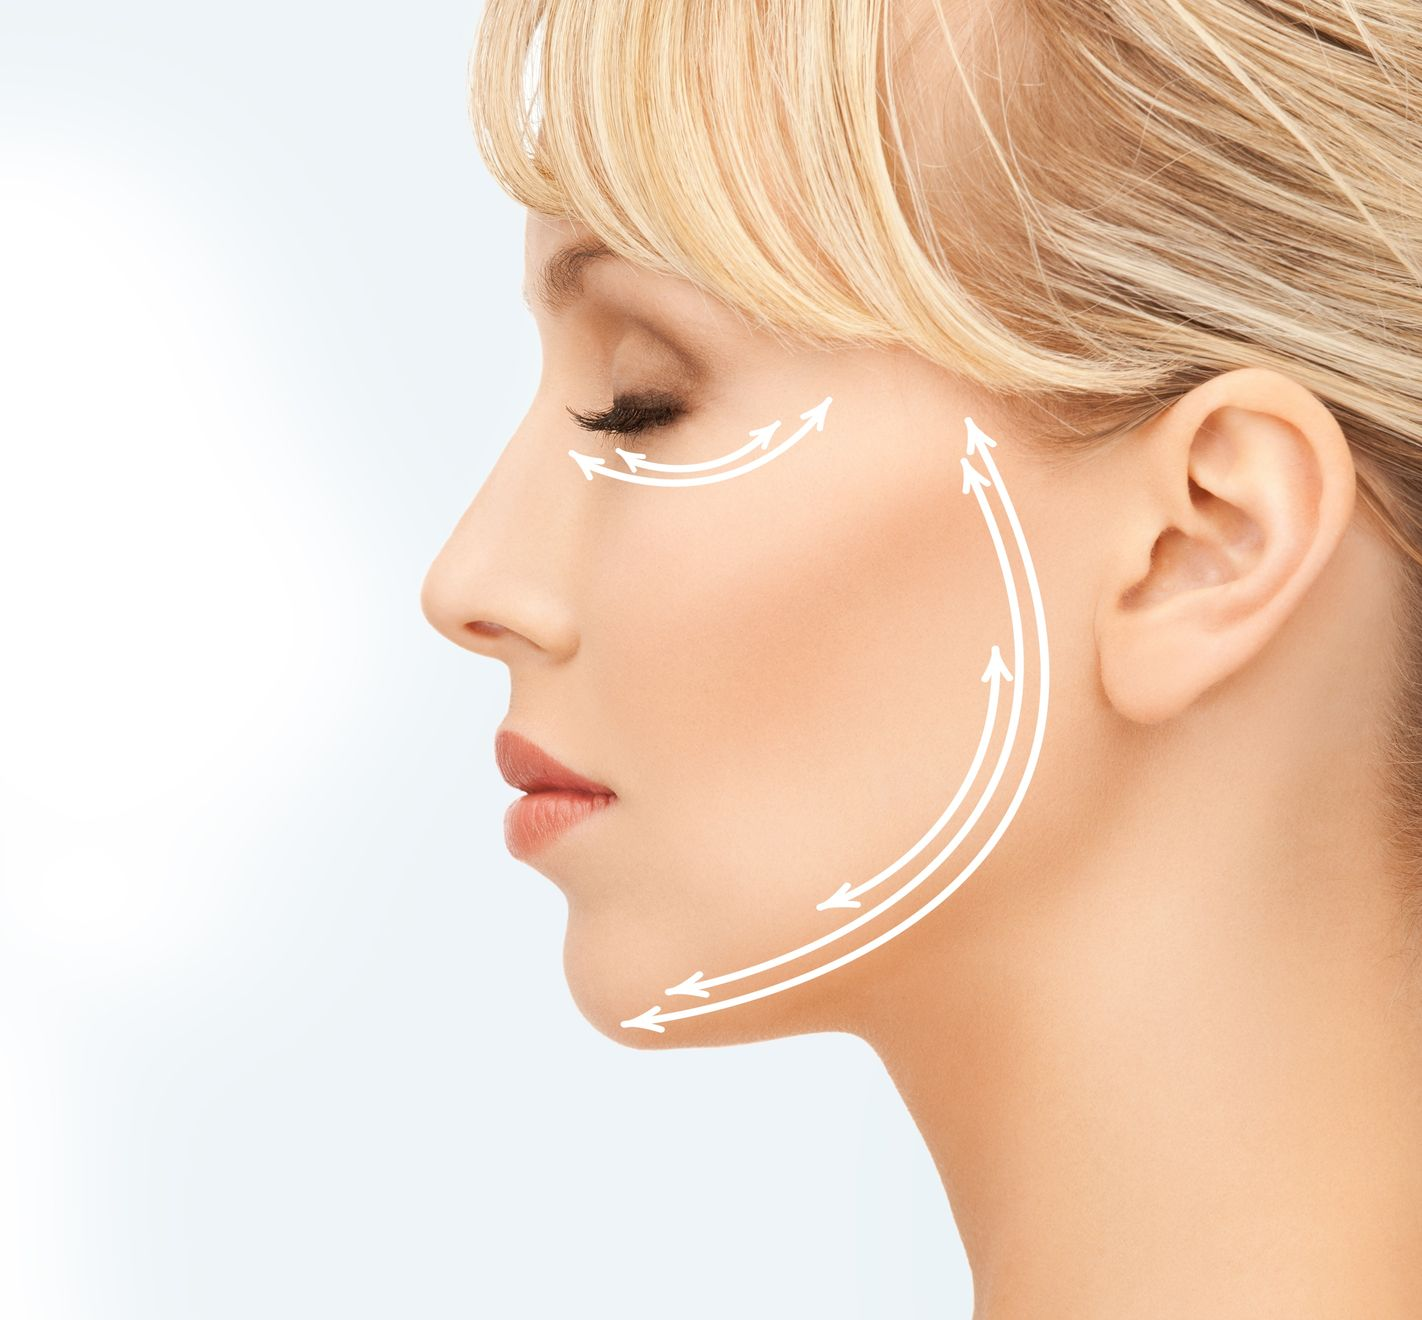 Dermal Fillers & Botox - Wrinkle erasers that work. Everyone will notice, no one will know